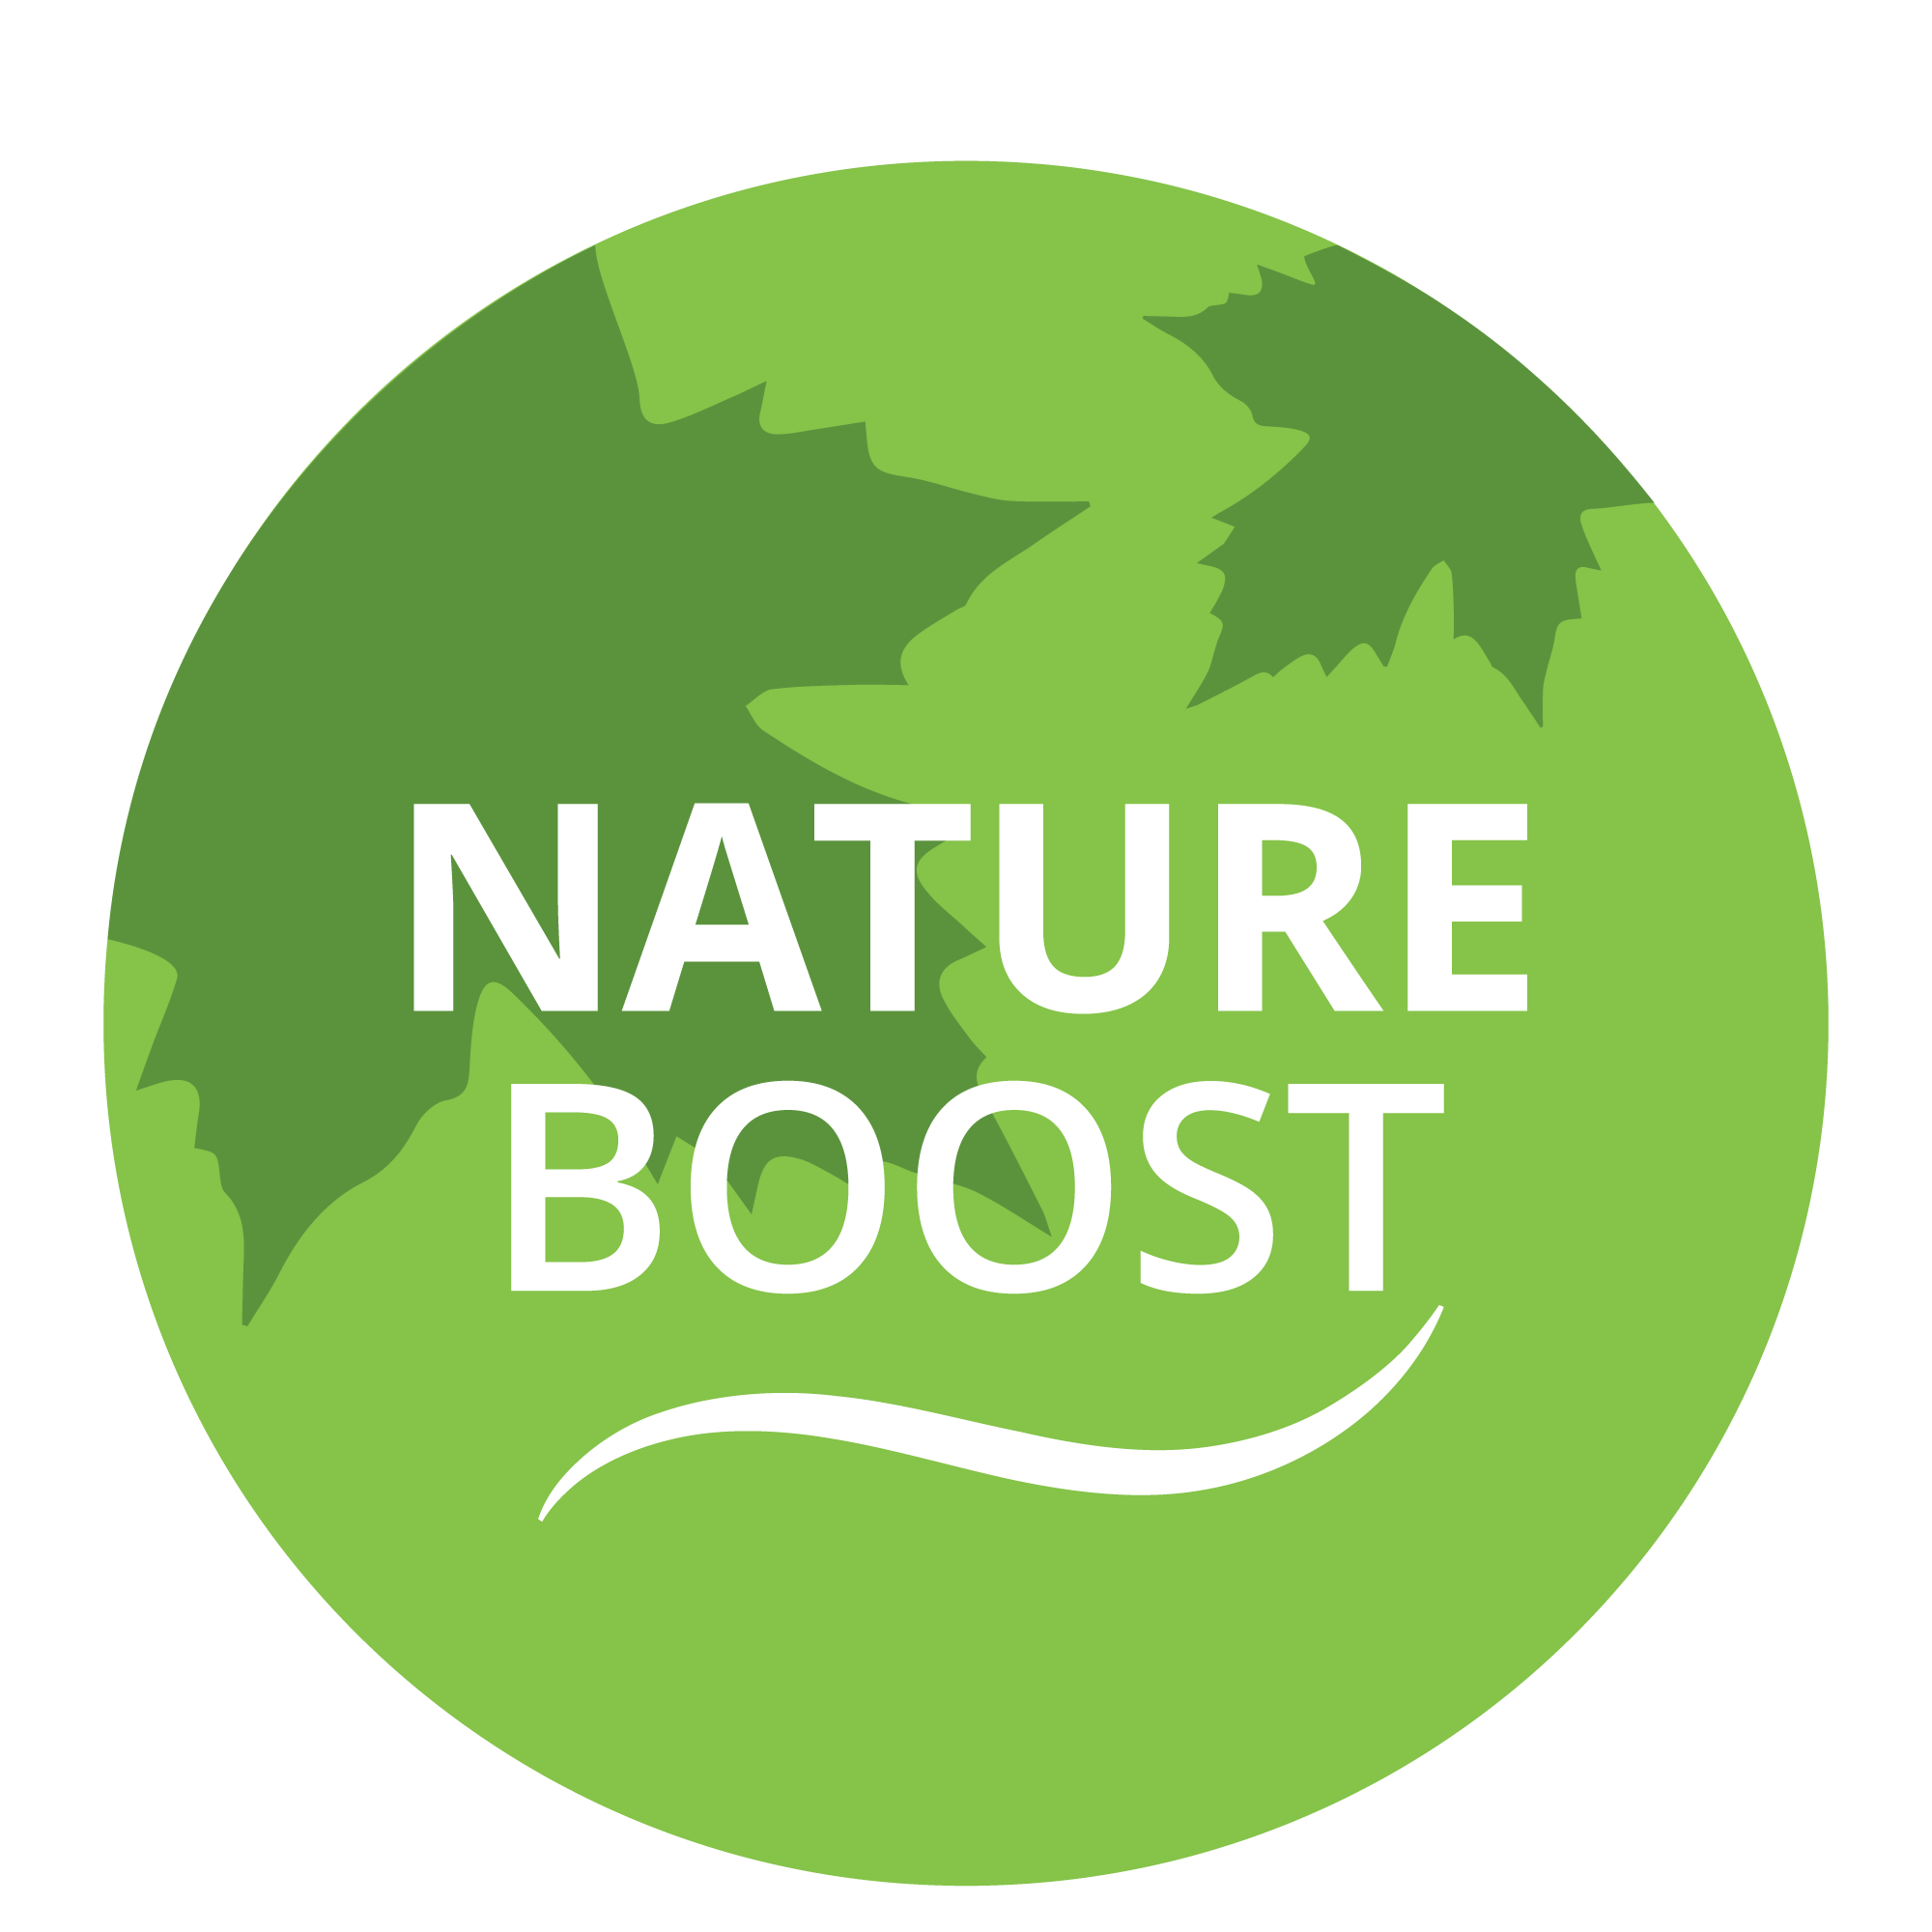 Nature Boost